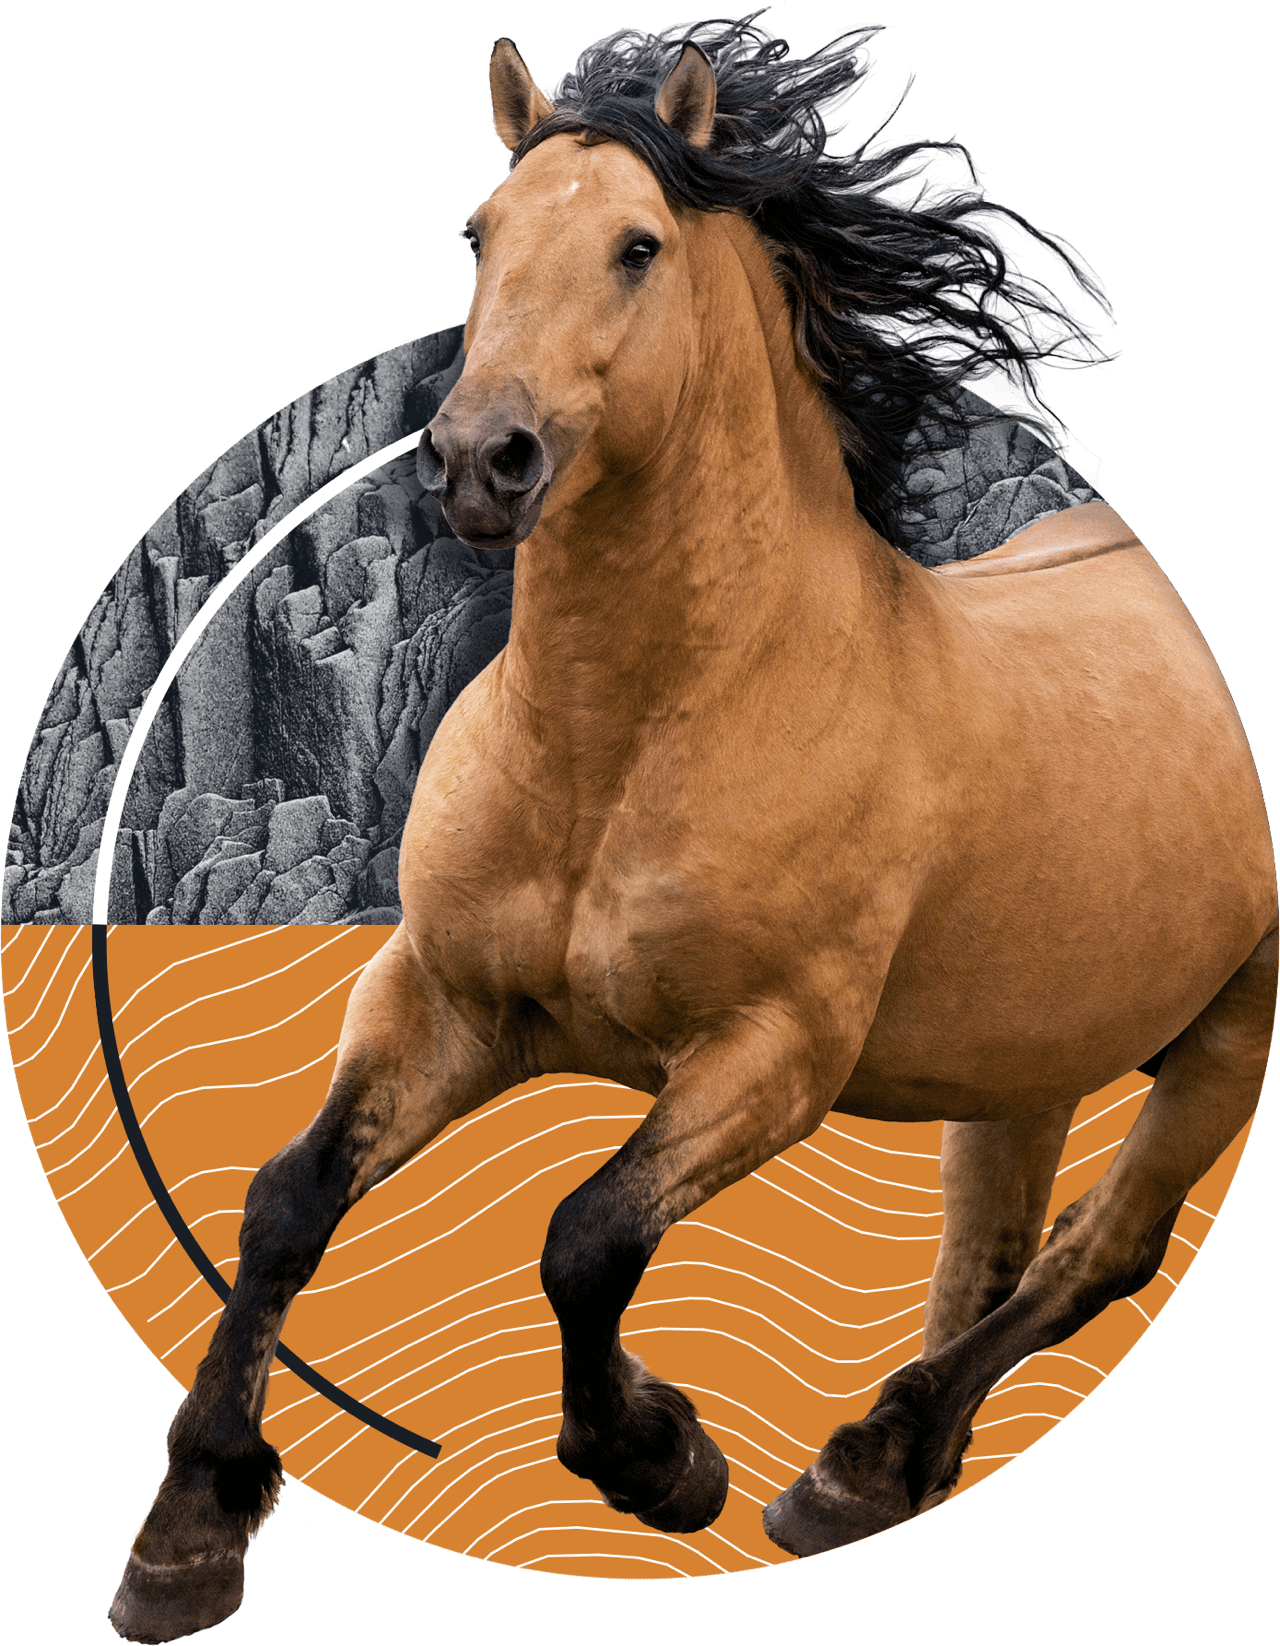 s2_horse.png